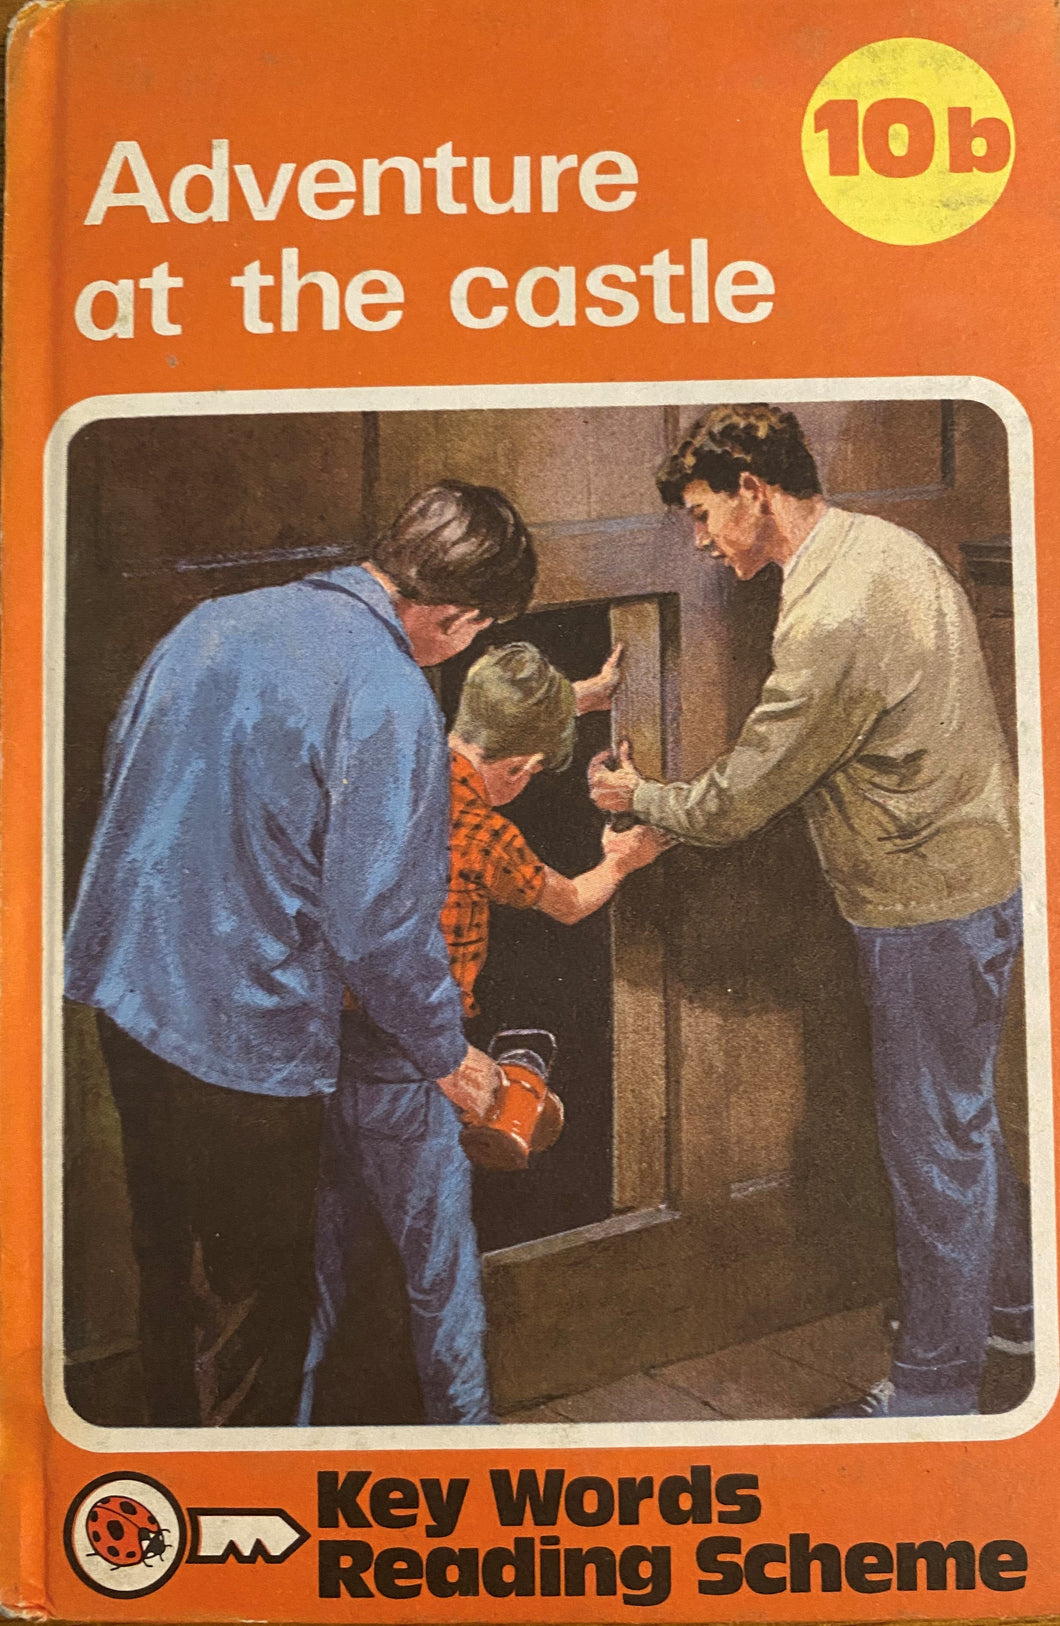 10B Adventures at the Castle (25 June 1979 - 31 December 1980)